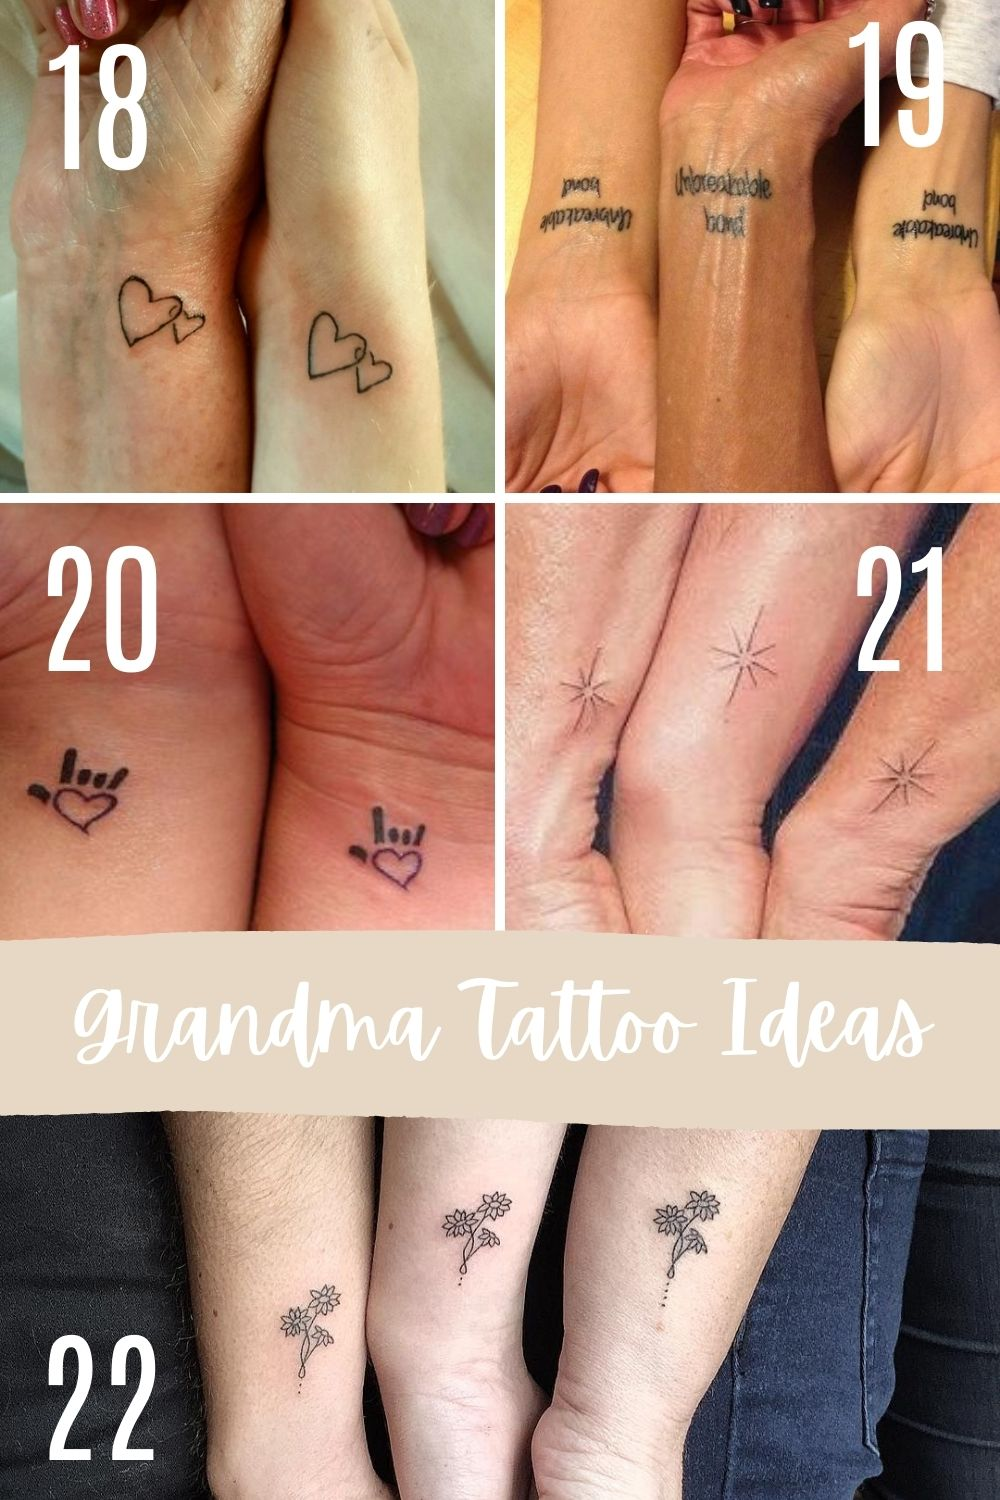 Matching Grandma Tattoos For Family